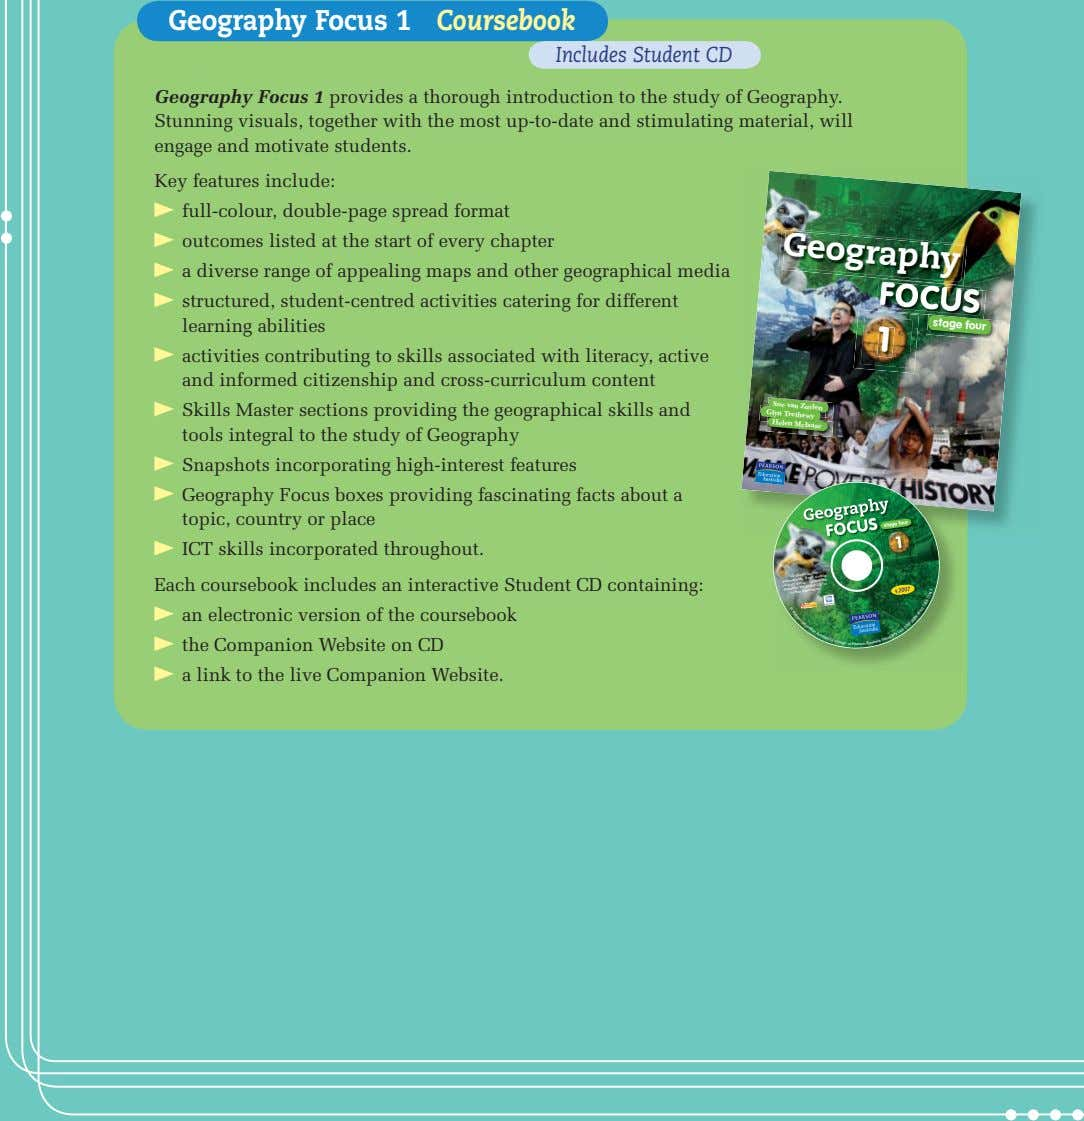 Geography Focus 1 Coursebook Includes Student CD Geography Focus 1 provides a thorough introduction to